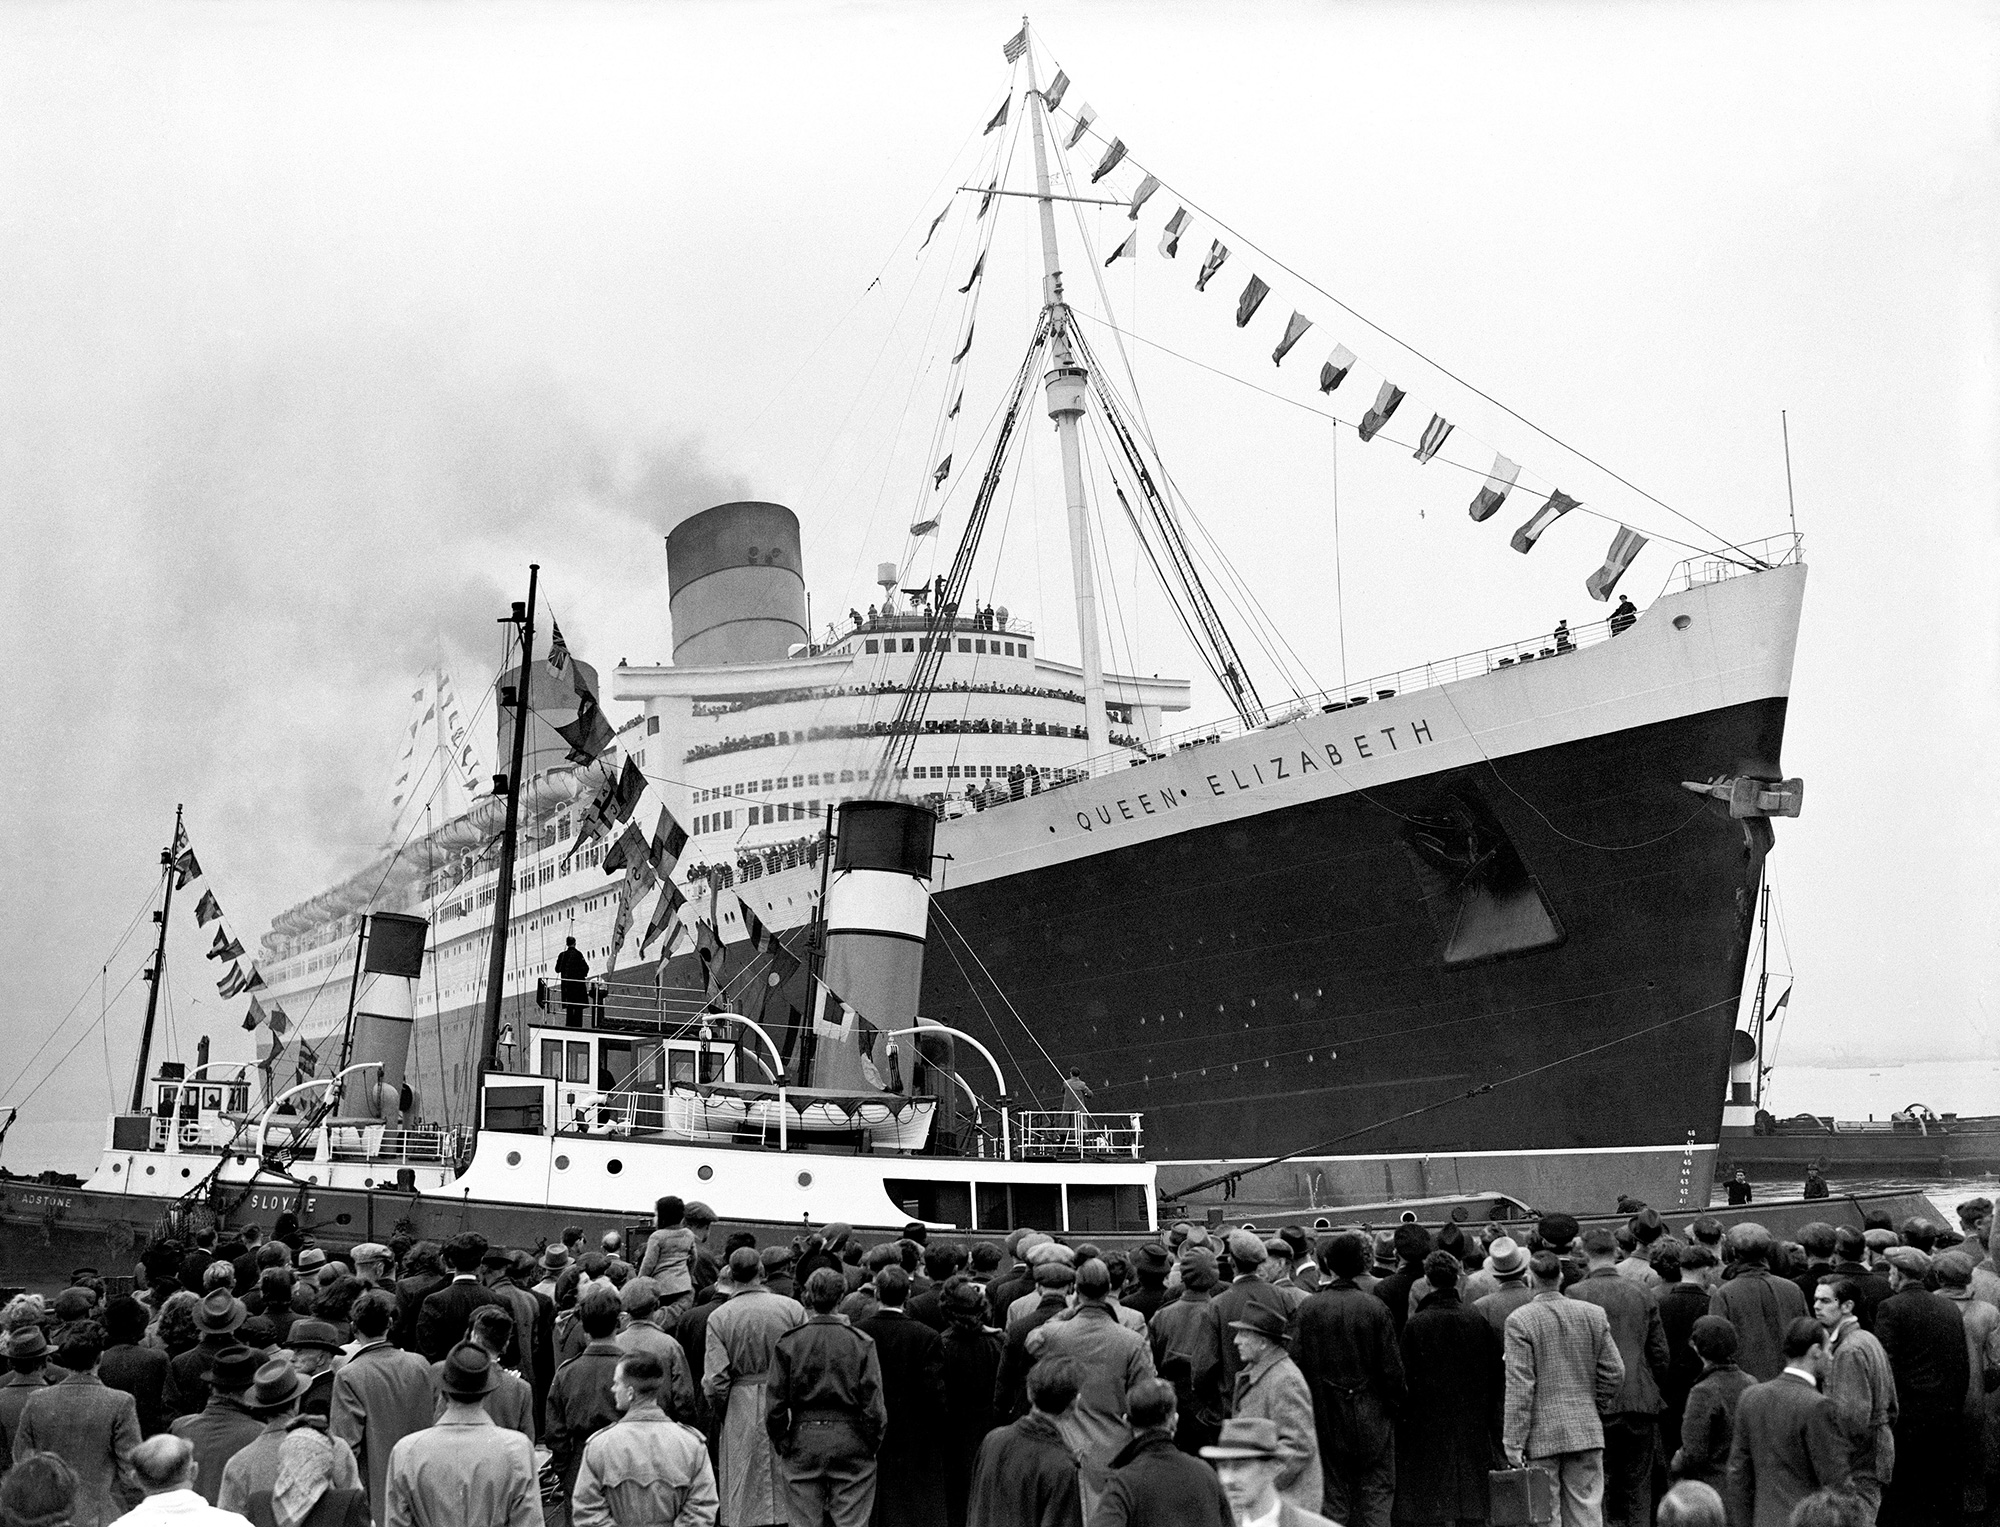 UK Transport - Sea - Liners - RMS Queen Elizabeth - Southampton - 1946